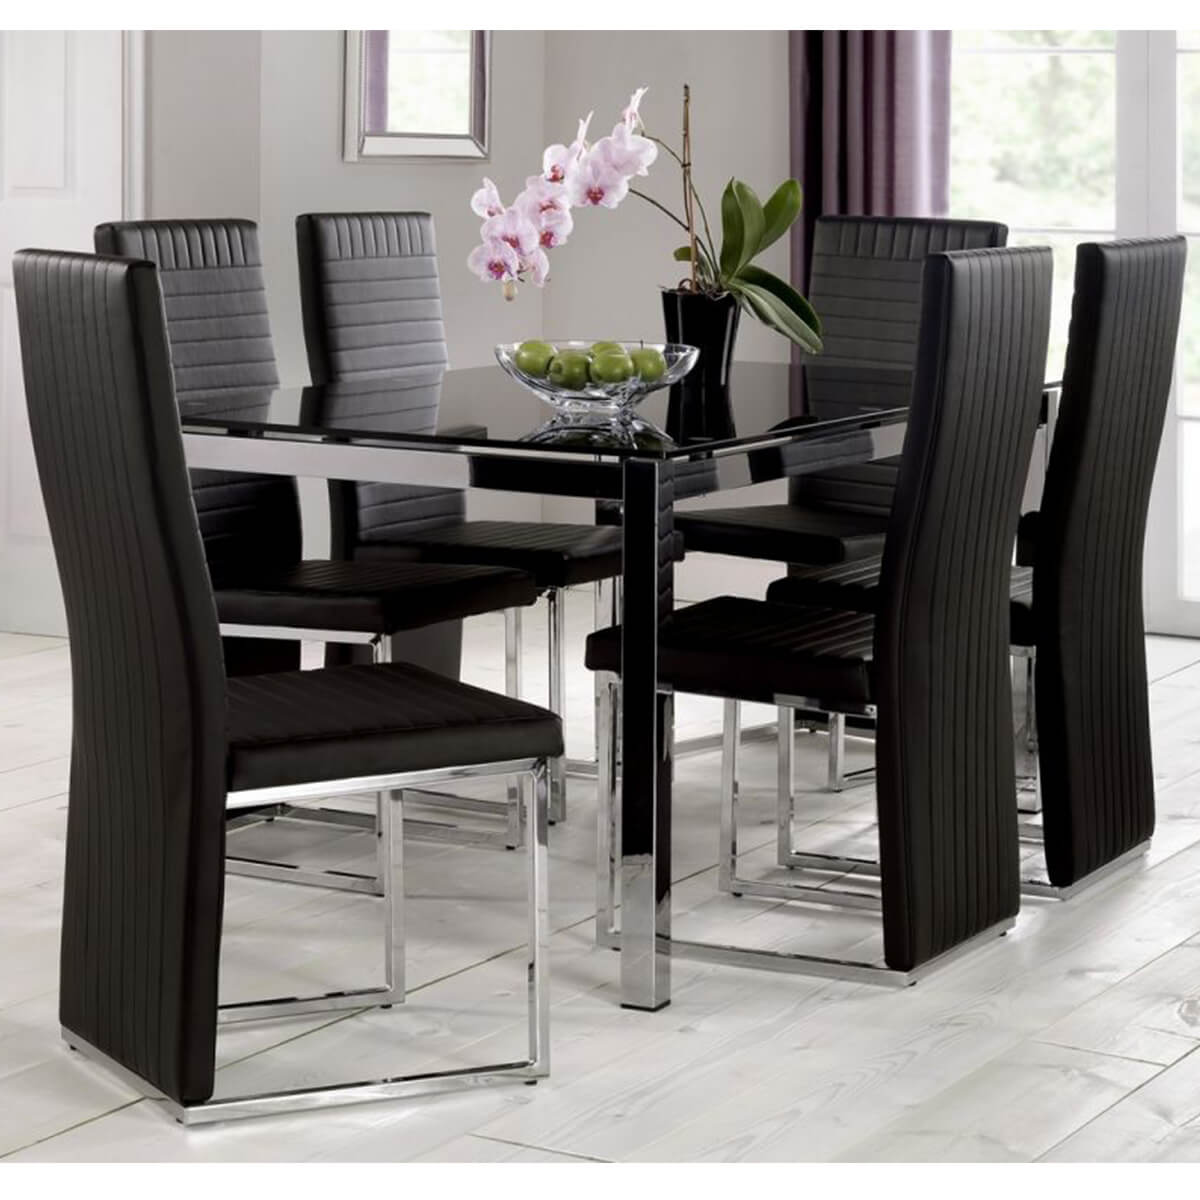 Tempo Black Dining Table With Black Chairs Fads